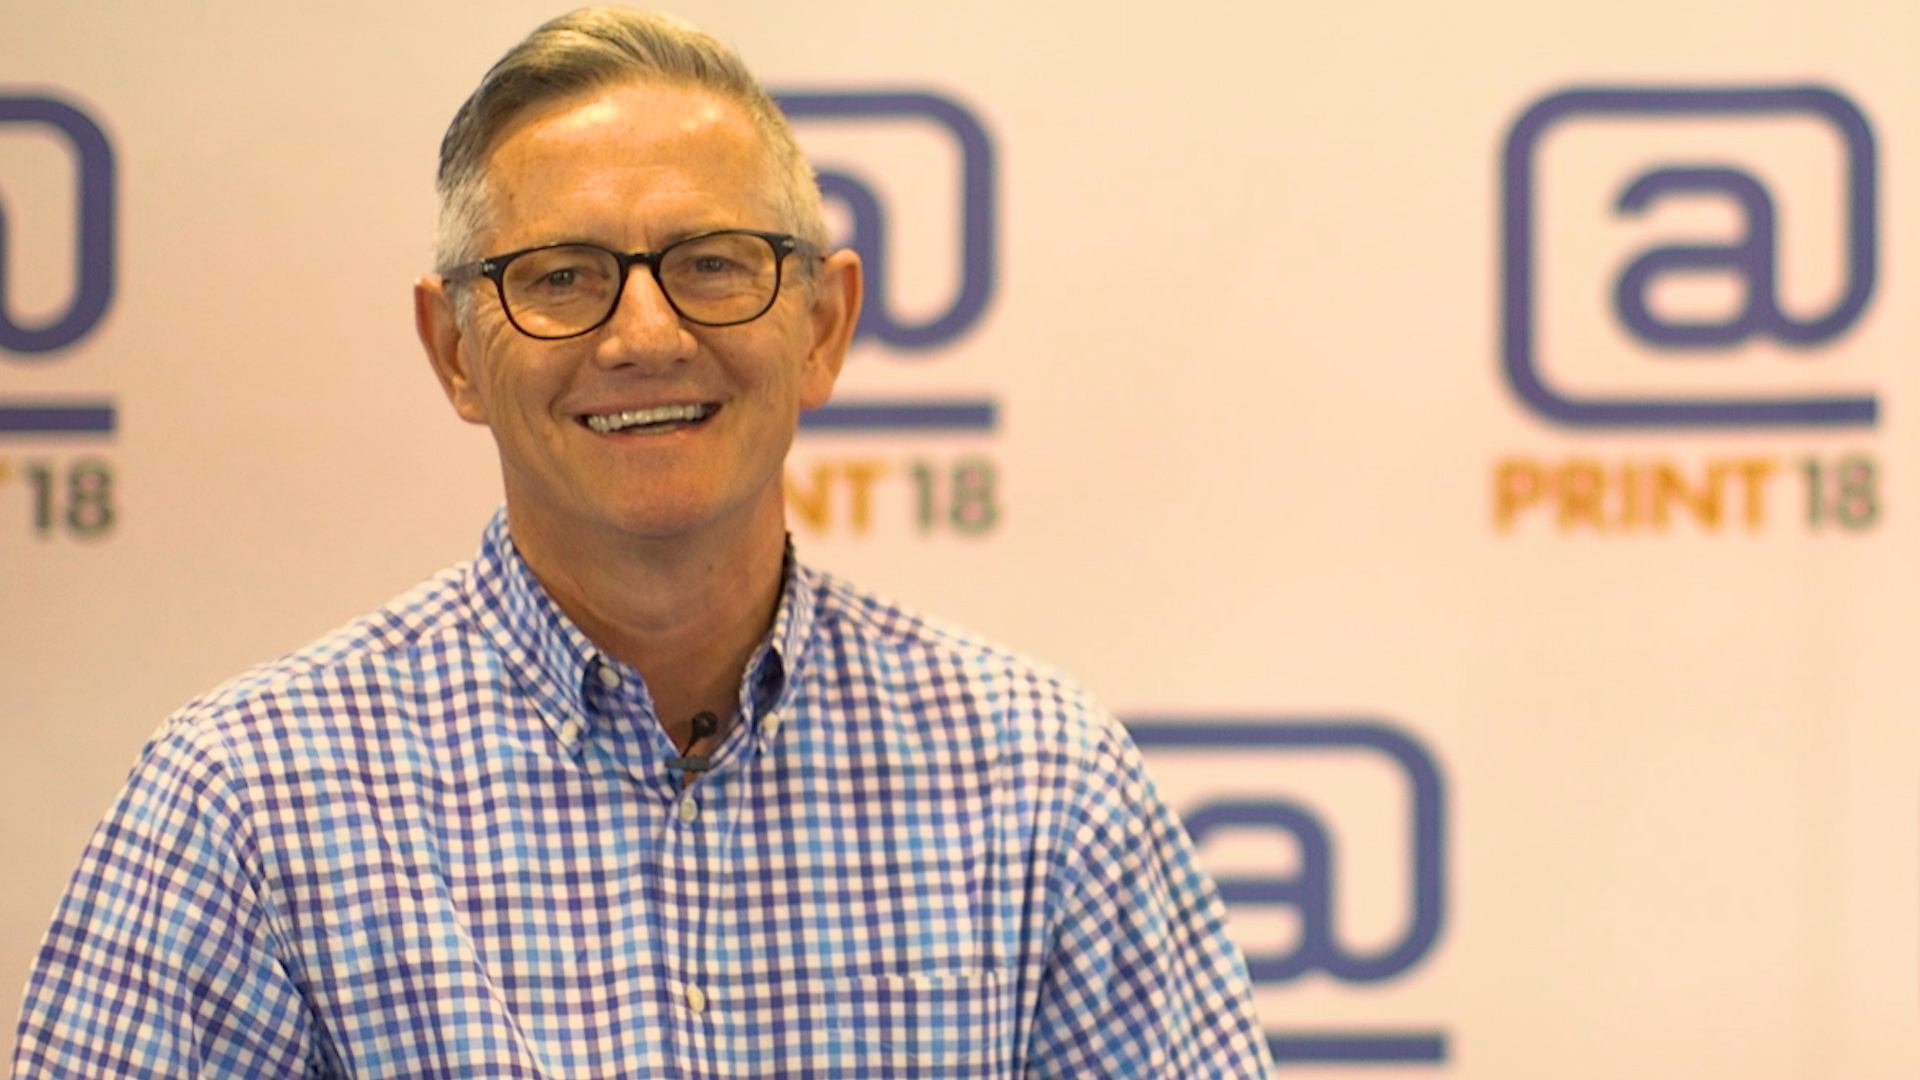 Video preview: Modern Litho Expands Its Footprint